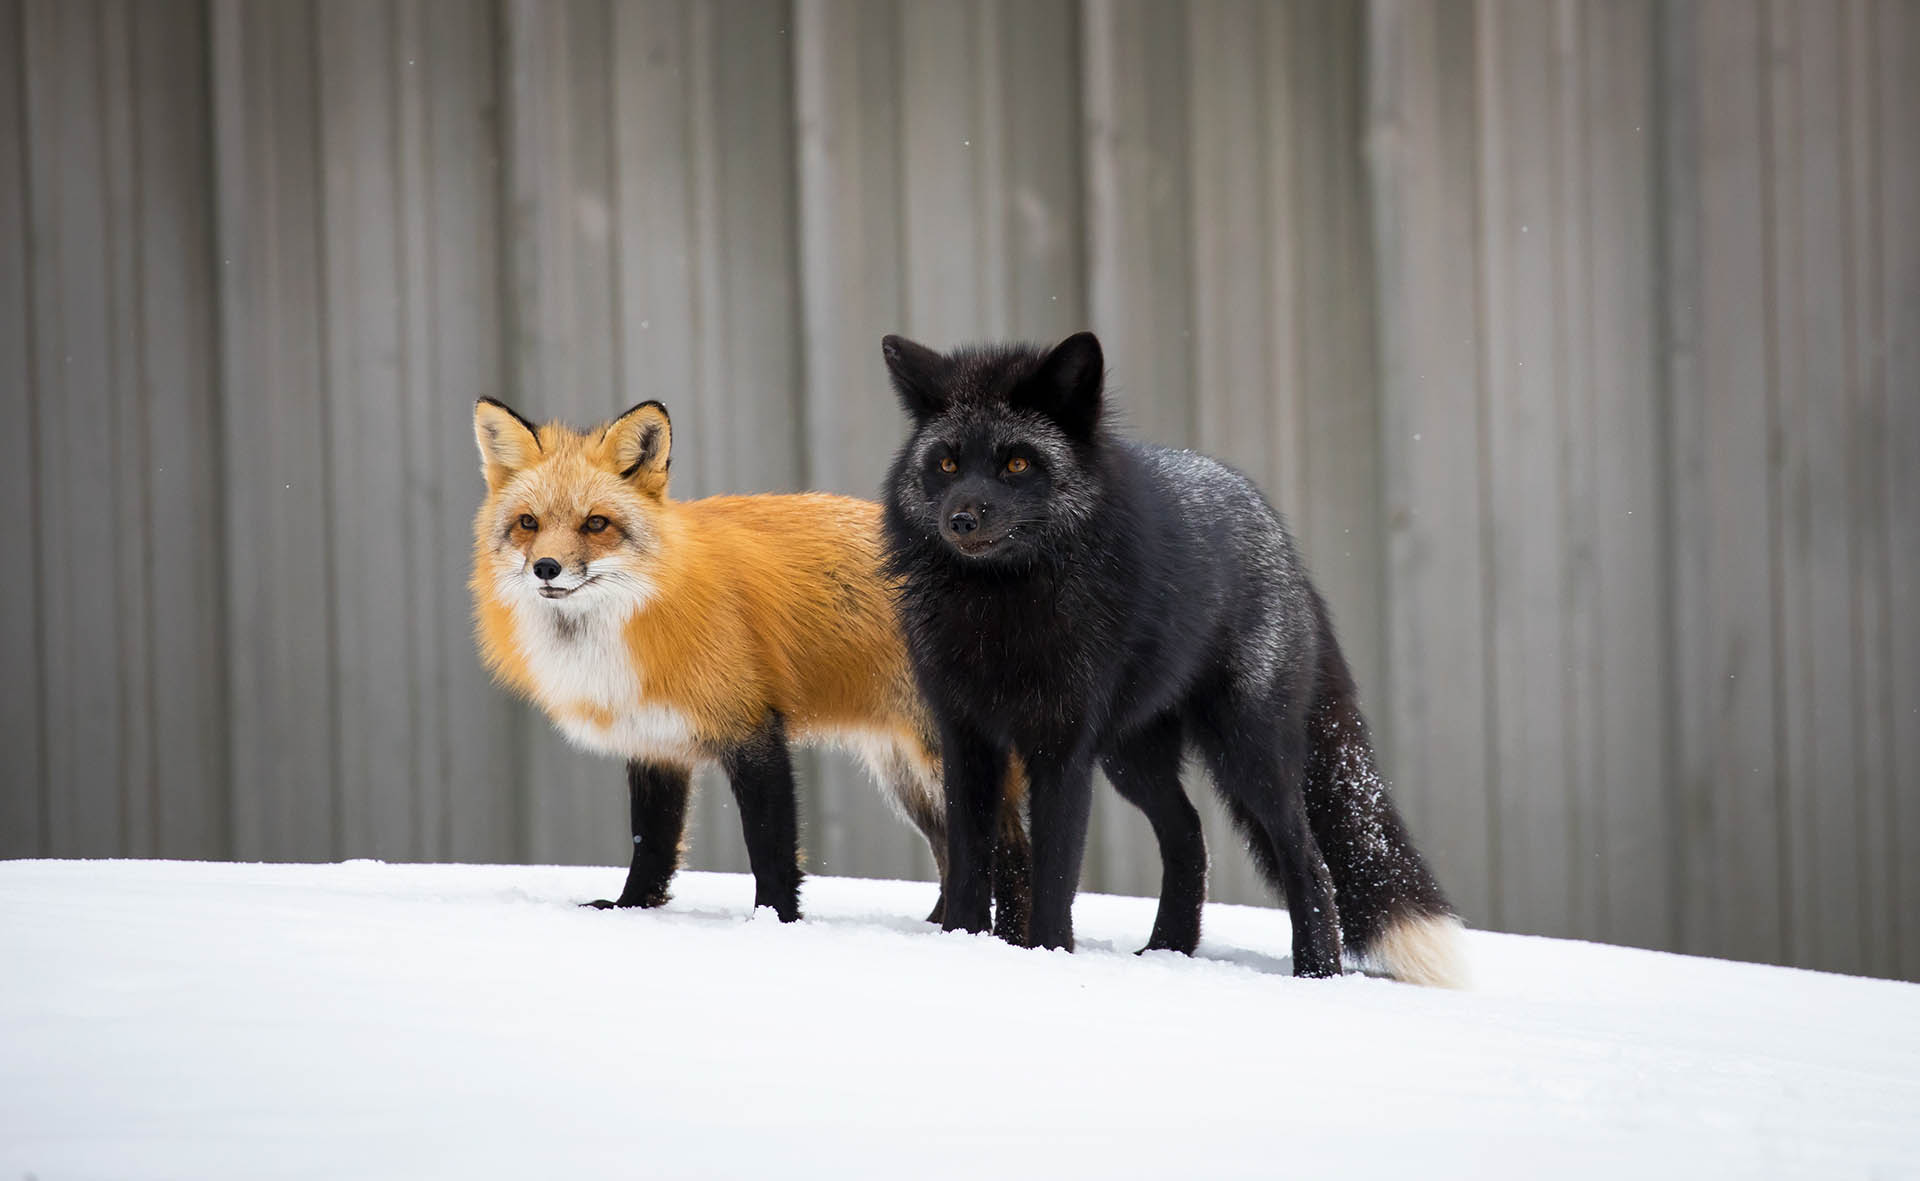 Red and Silver foxes vulpes vulpes Brittany Crossman Vulpes Vulpes The Red Fox Conjour Wildlife Photography Feature 2